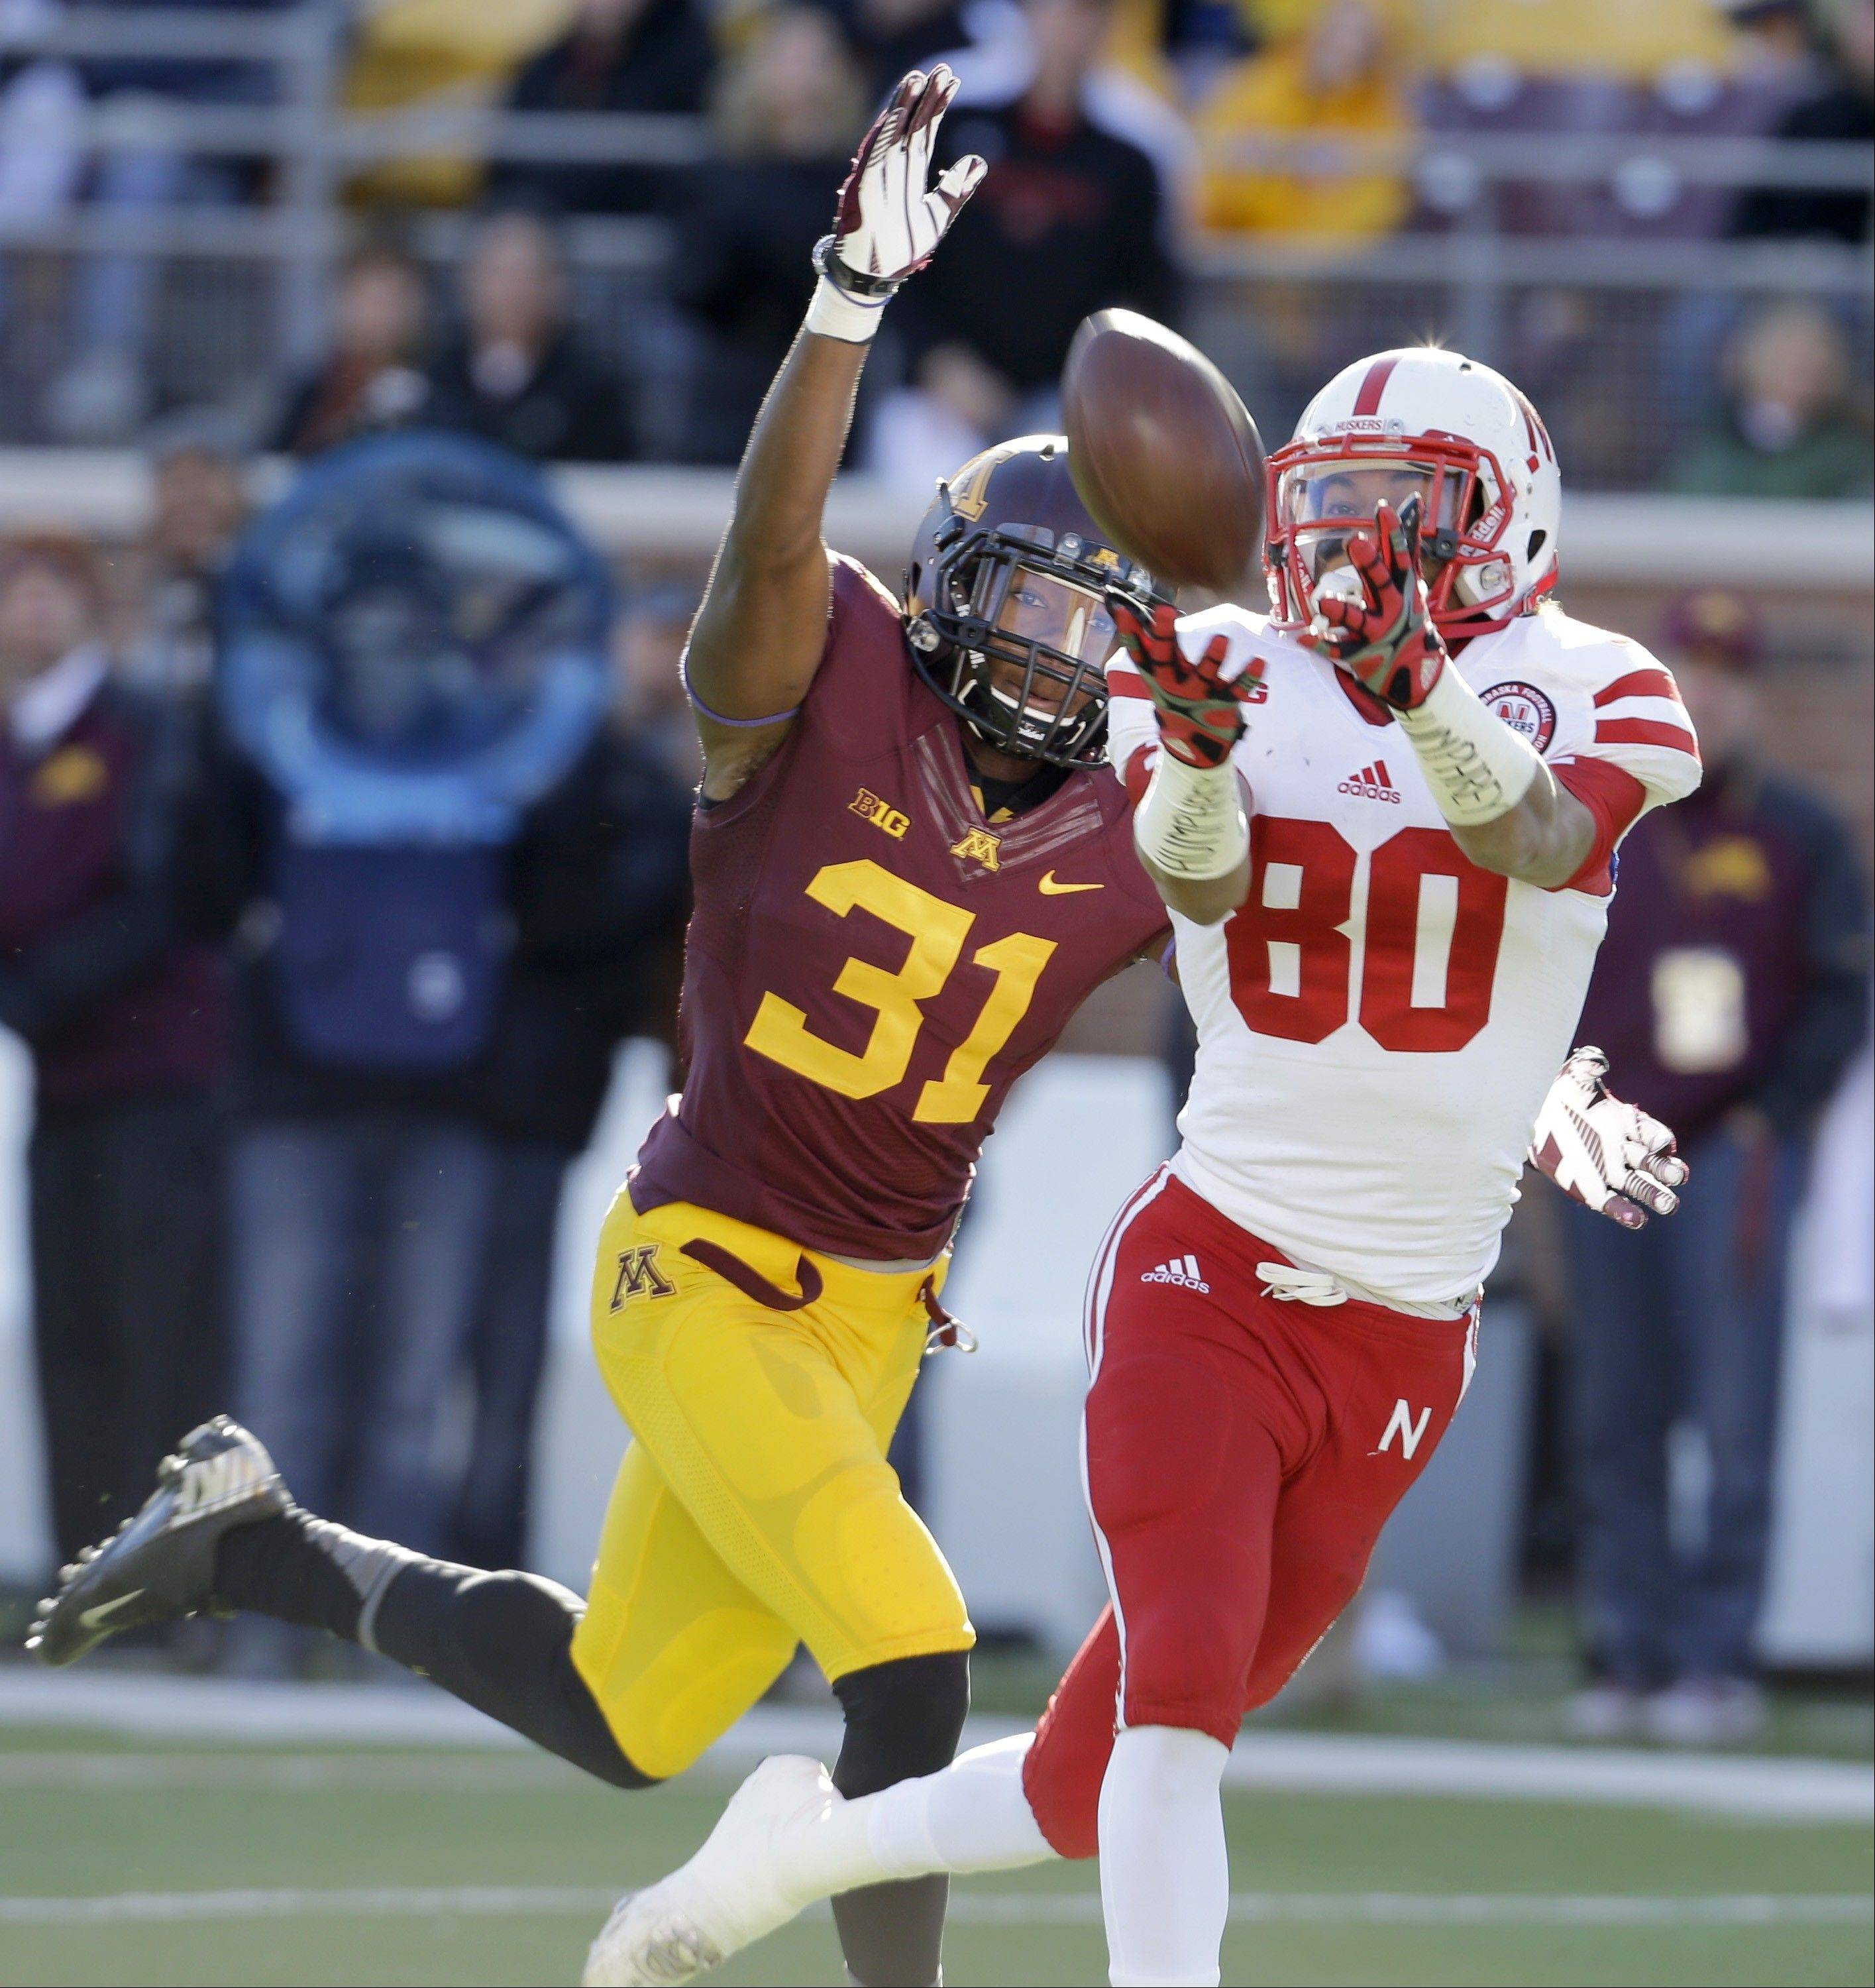 Nebraska looking for bounce-back win vs. Northwestern